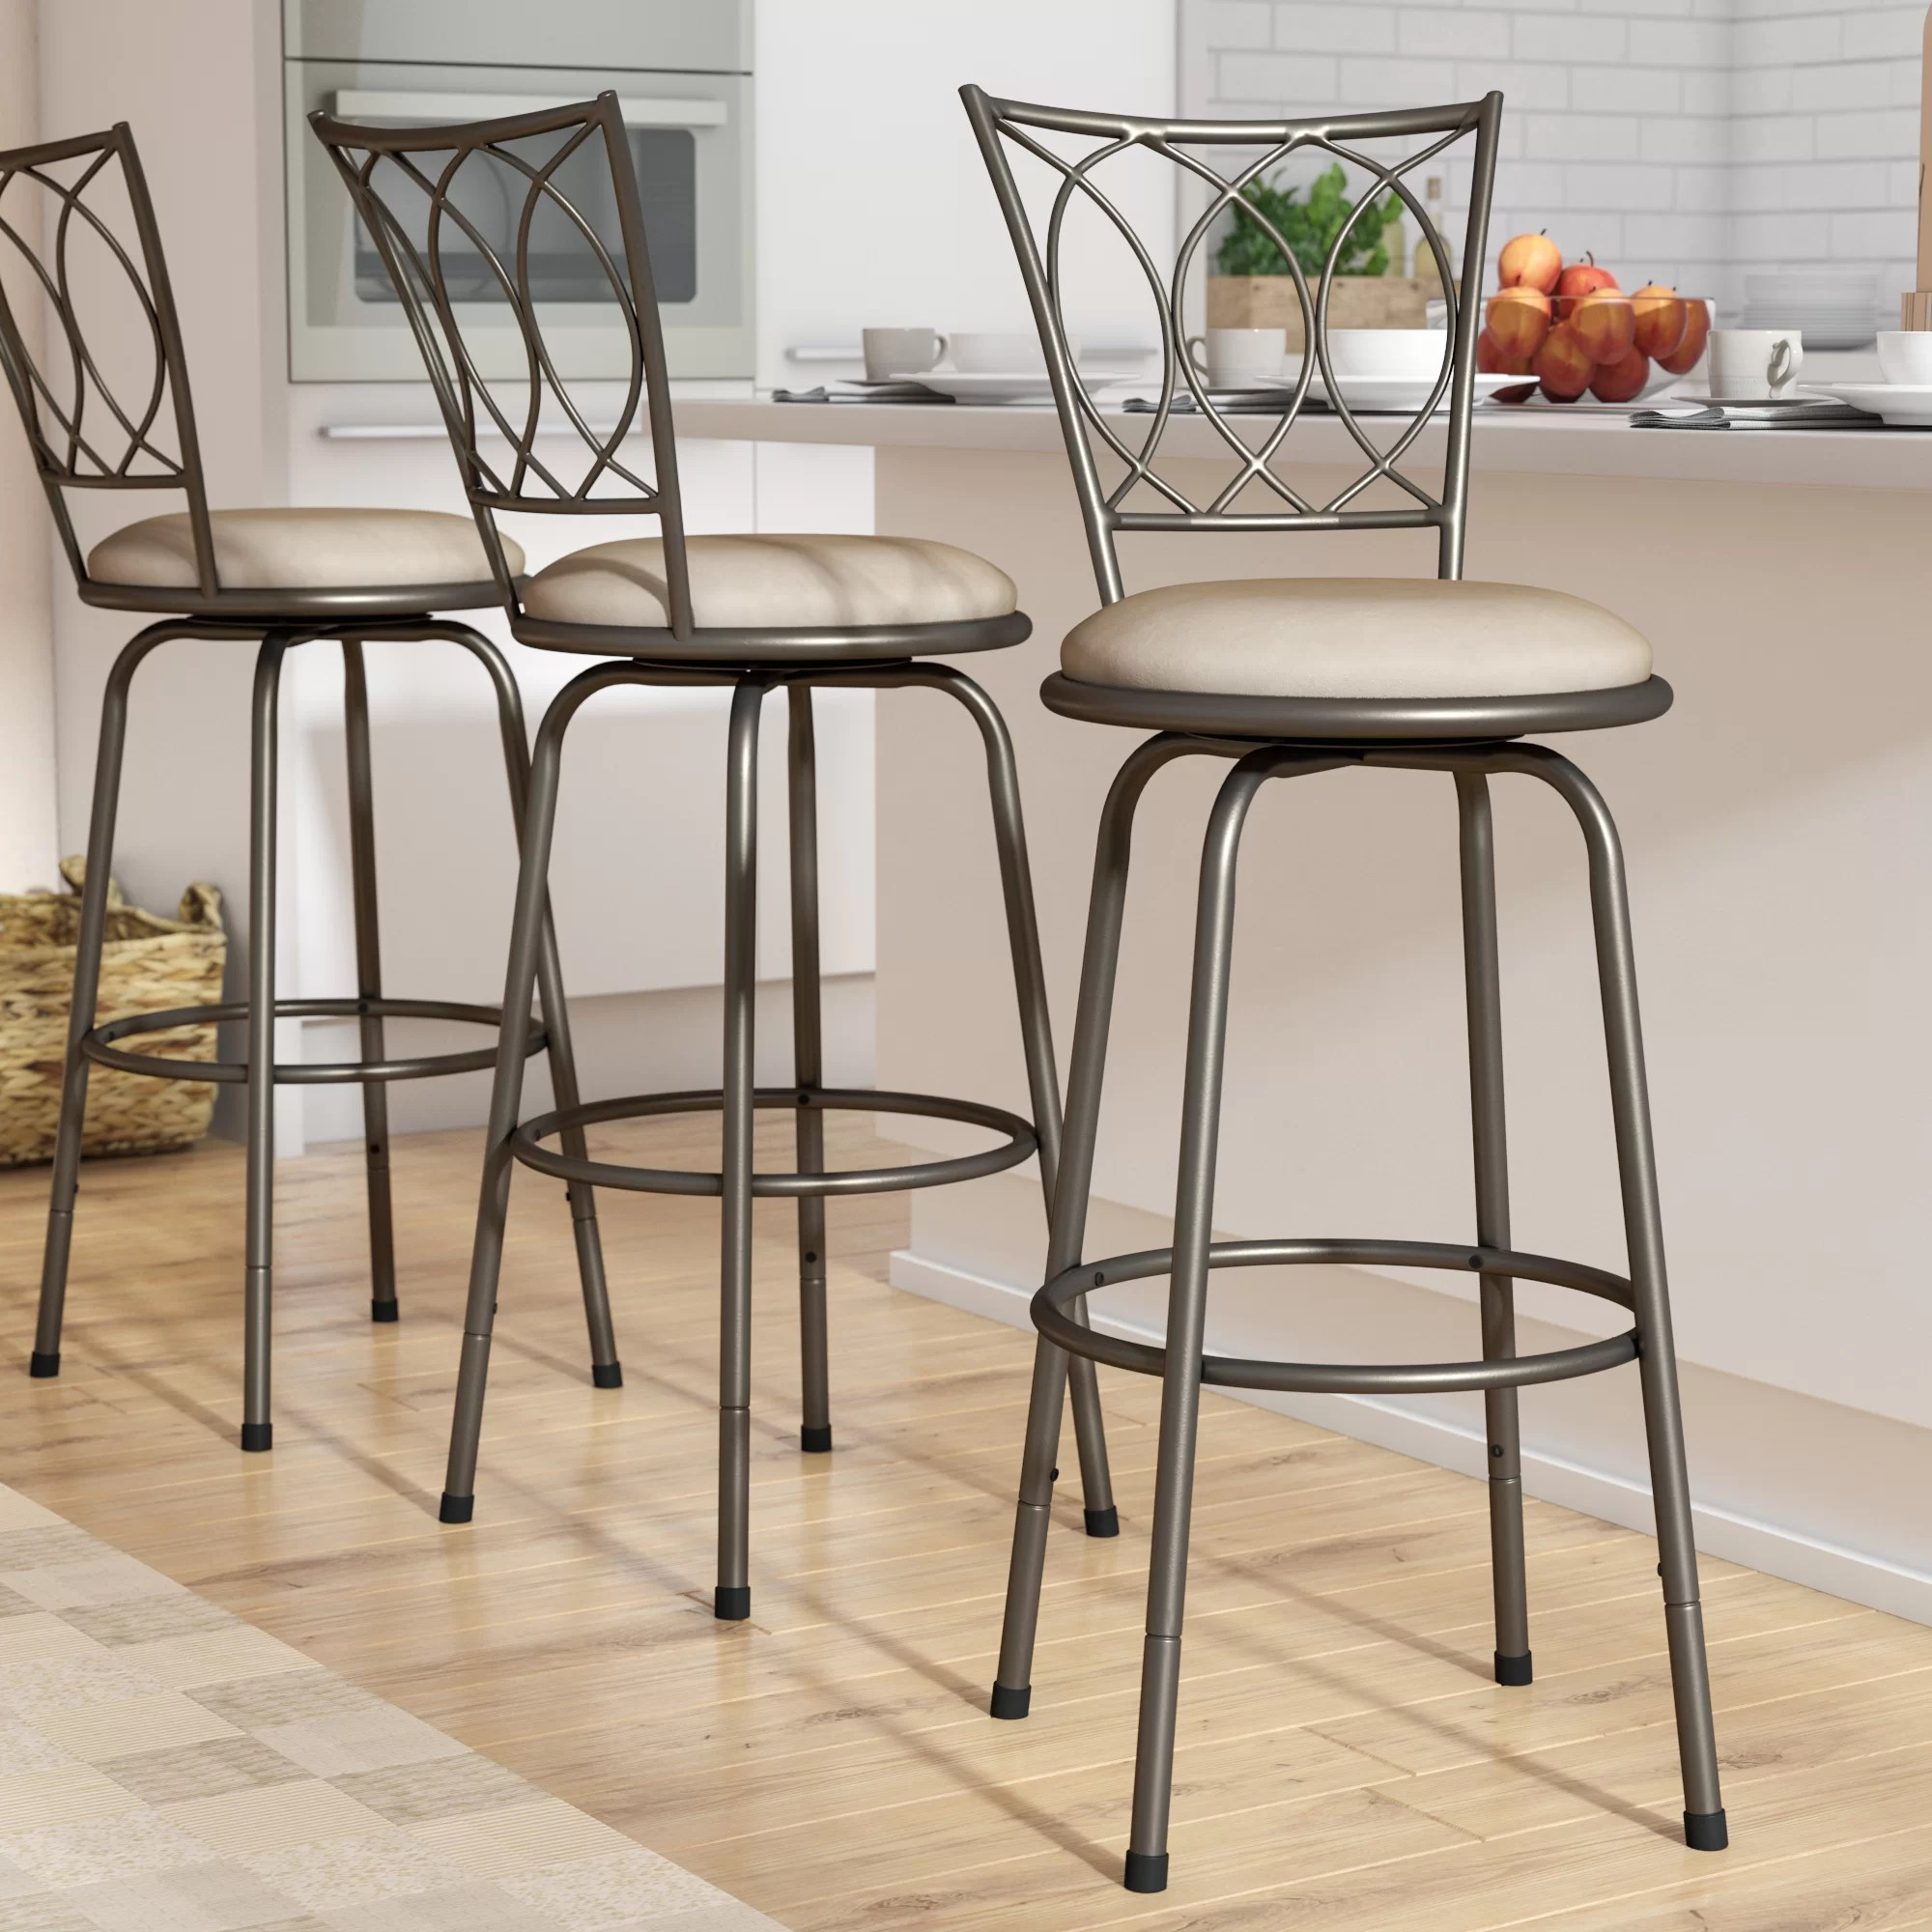 Kitchen Bar Stools On Sale Temple Meads Adjustable Height Swivel Bar Stool